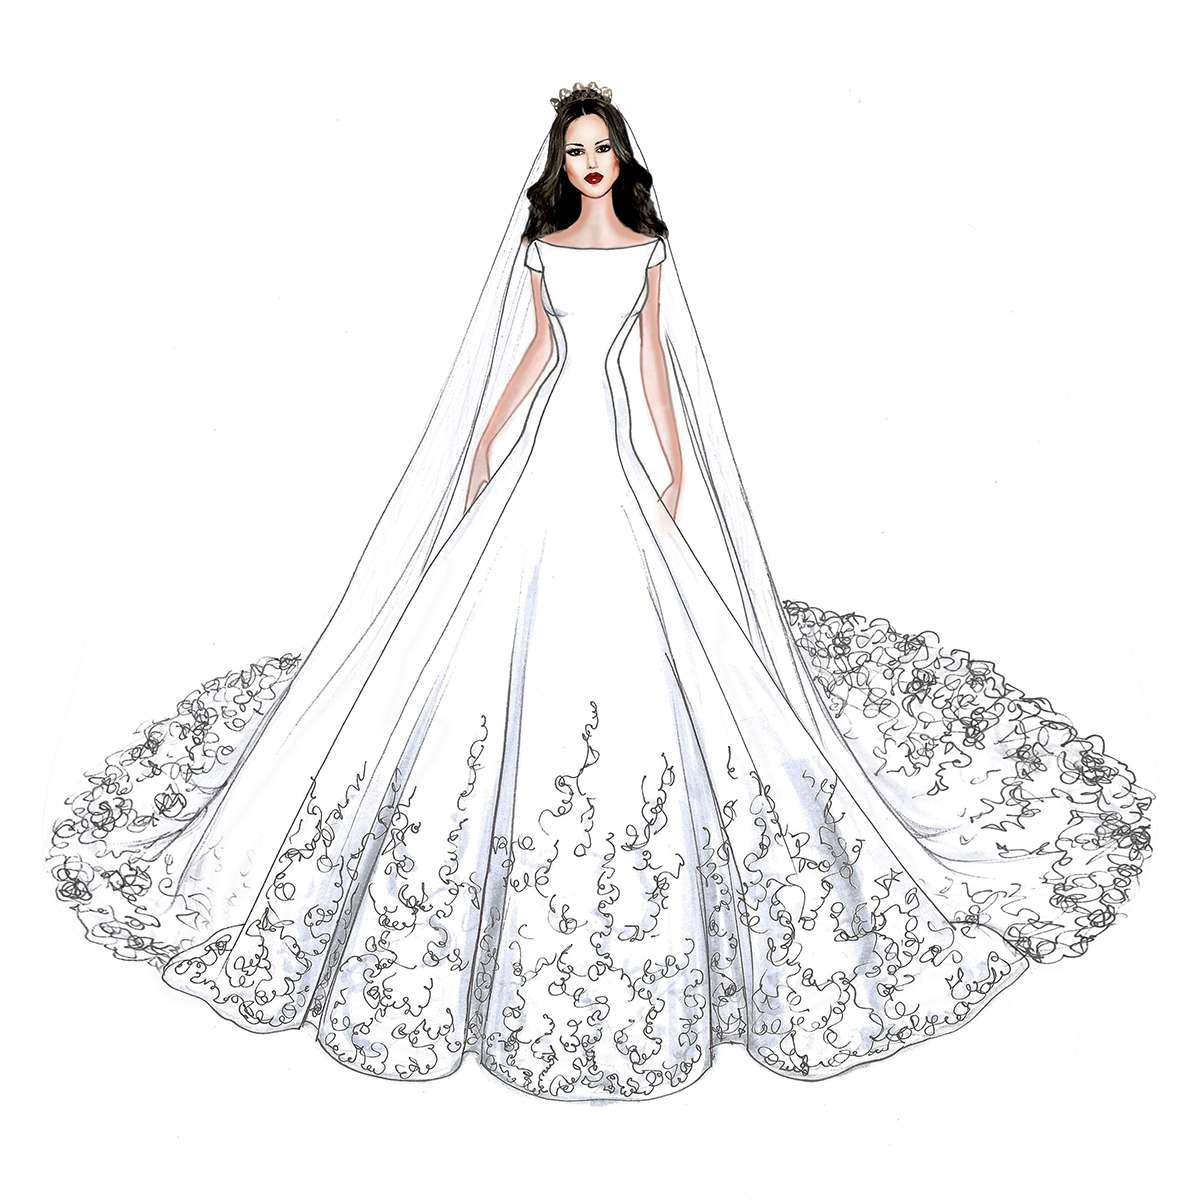 Design A Wedding Dress.Meghan Markle S Wedding Dress Will Look Like This According